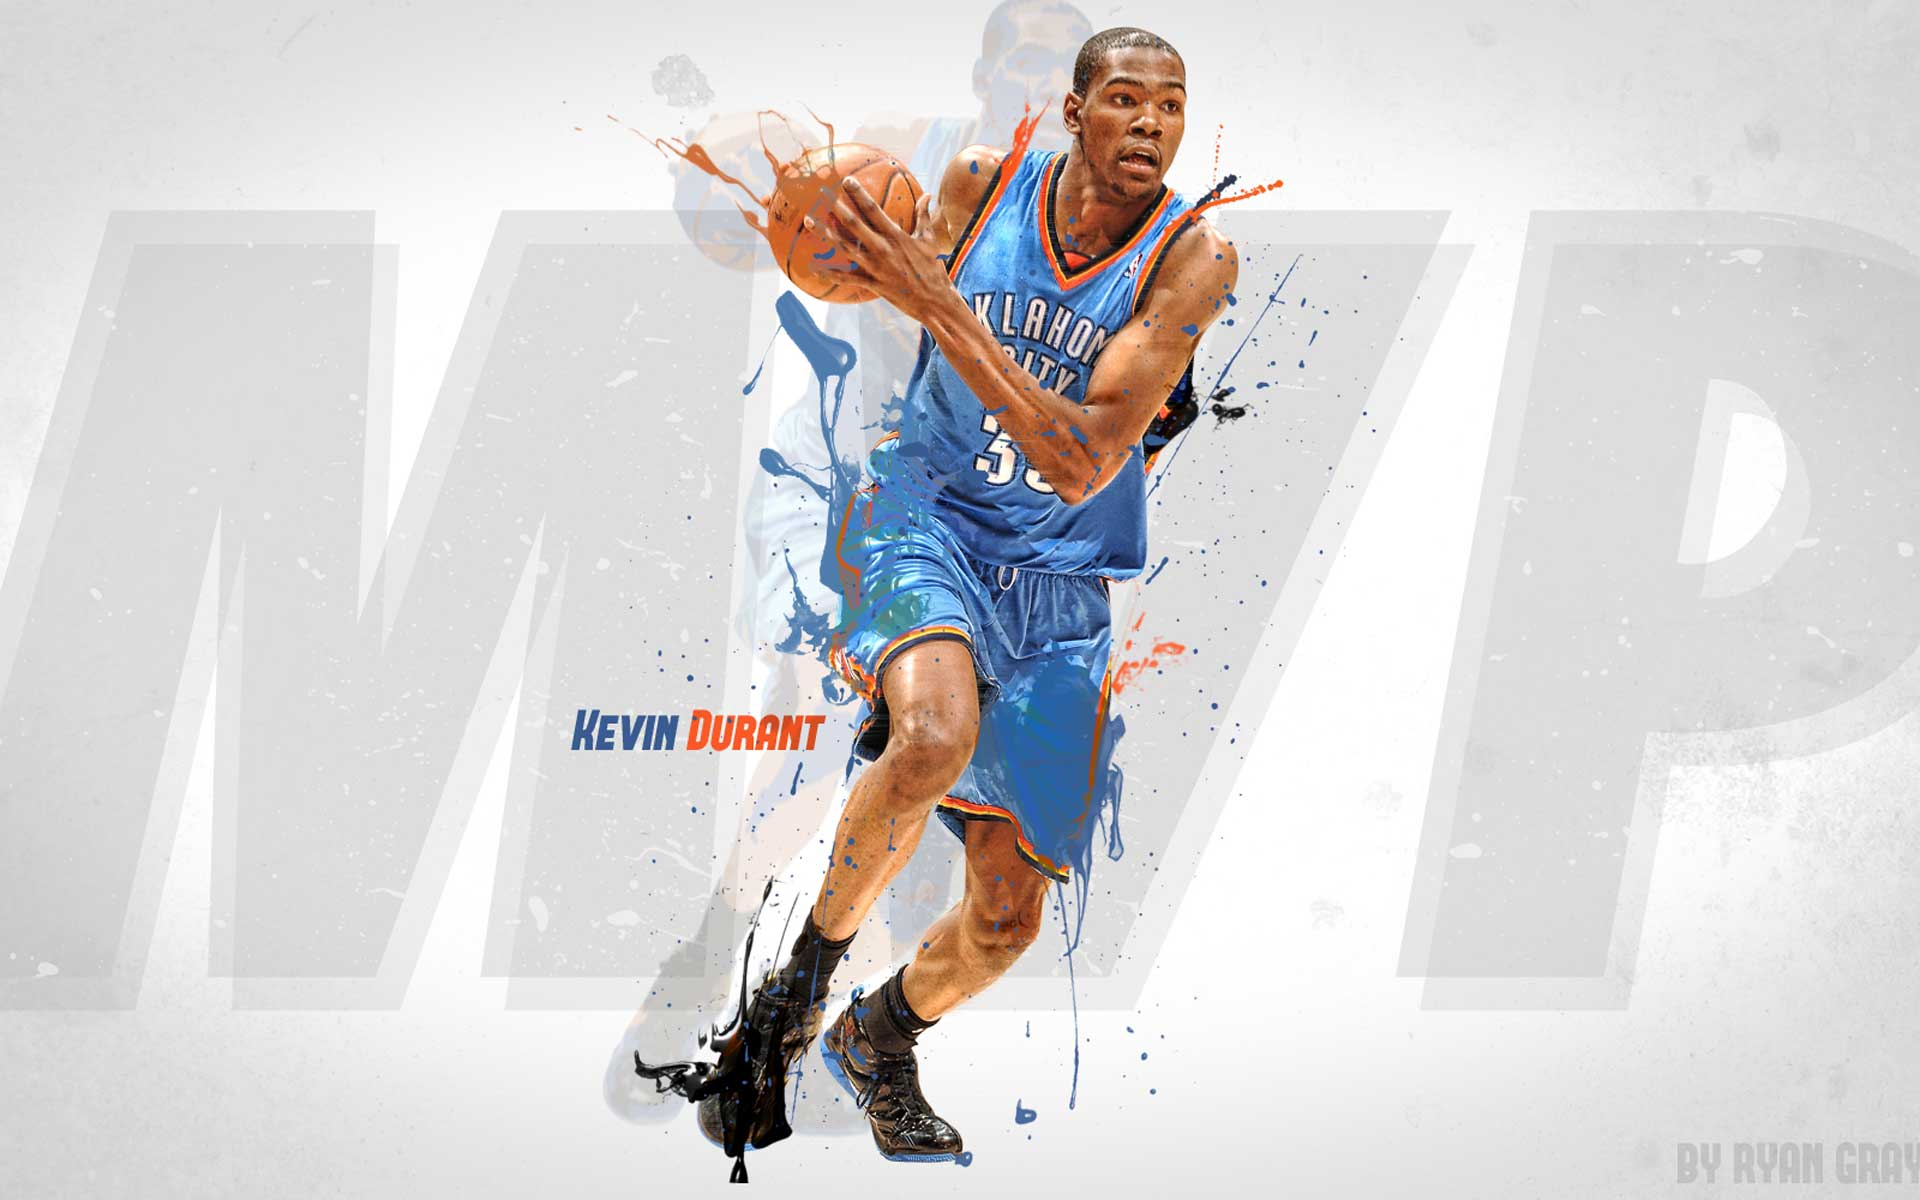 1000+ images about Kevin Durant on Pinterest | Kevin Durant ...